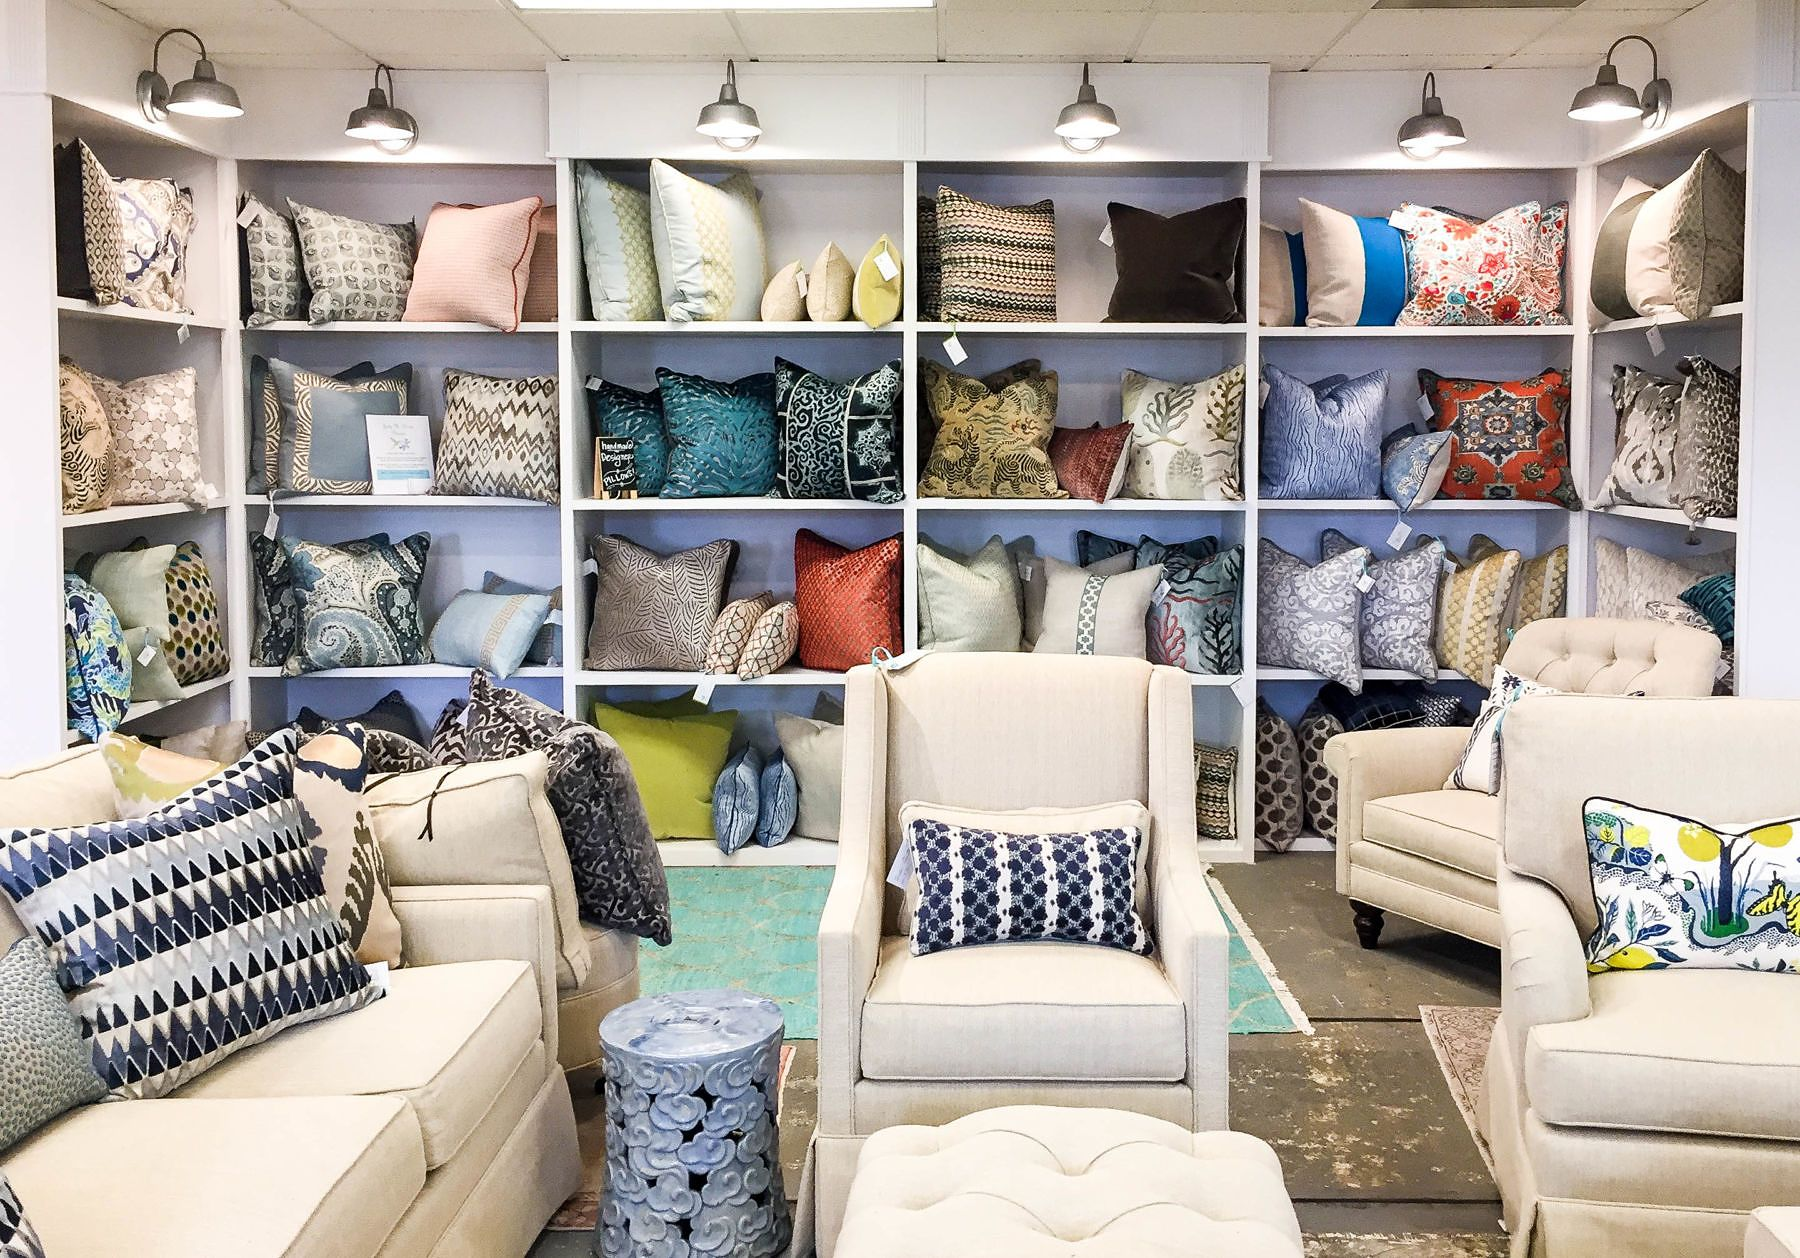 Astonishing Where To Shop Like An Interior Designer In Charlotte Shops Home Interior And Landscaping Ologienasavecom